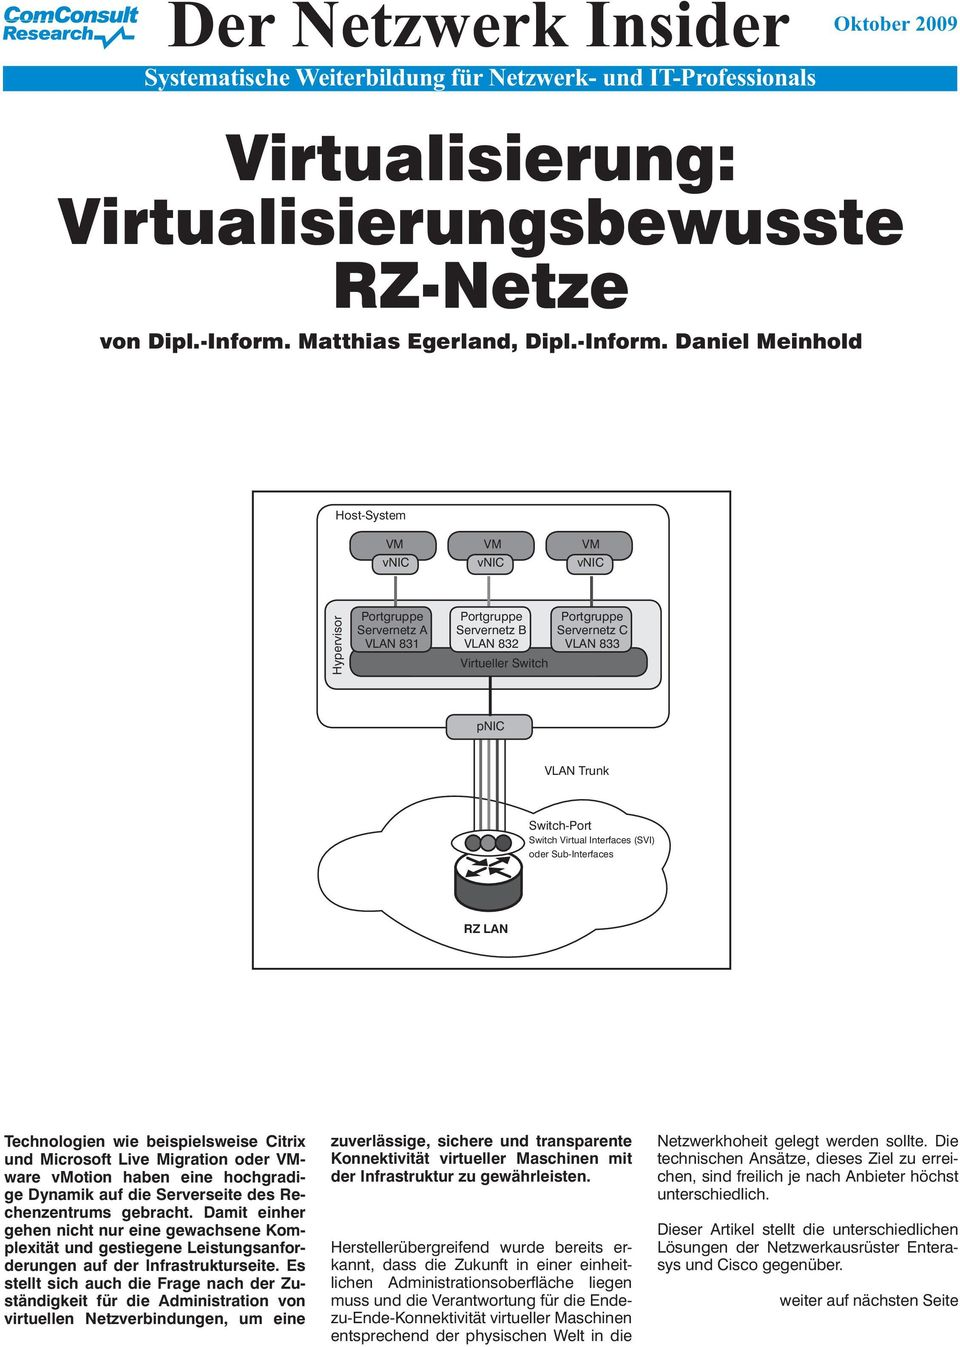 Daniel Meinhold Host-System v v v Portgruppe Servernetz A VLAN 831 Portgruppe Servernetz B VLAN 832 Virtueller Switch Portgruppe Servernetz C VLAN 833 p VLAN Trunk Switch-Port Switch Virtual